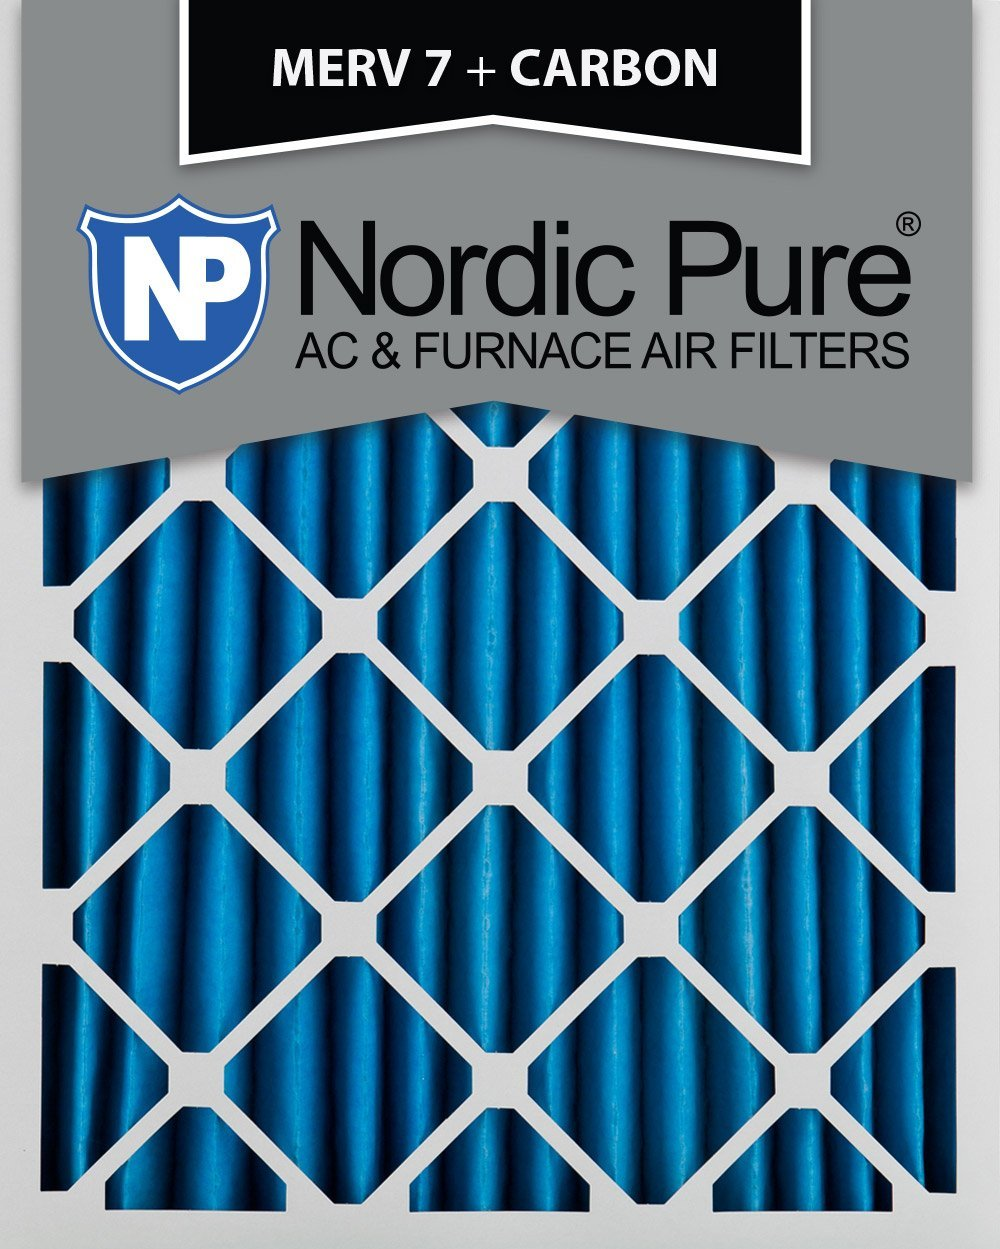 2 PACK Nordic Pure 18x24x1 MERV 10 Pleated AC Furnace Air Filters 2 Piece